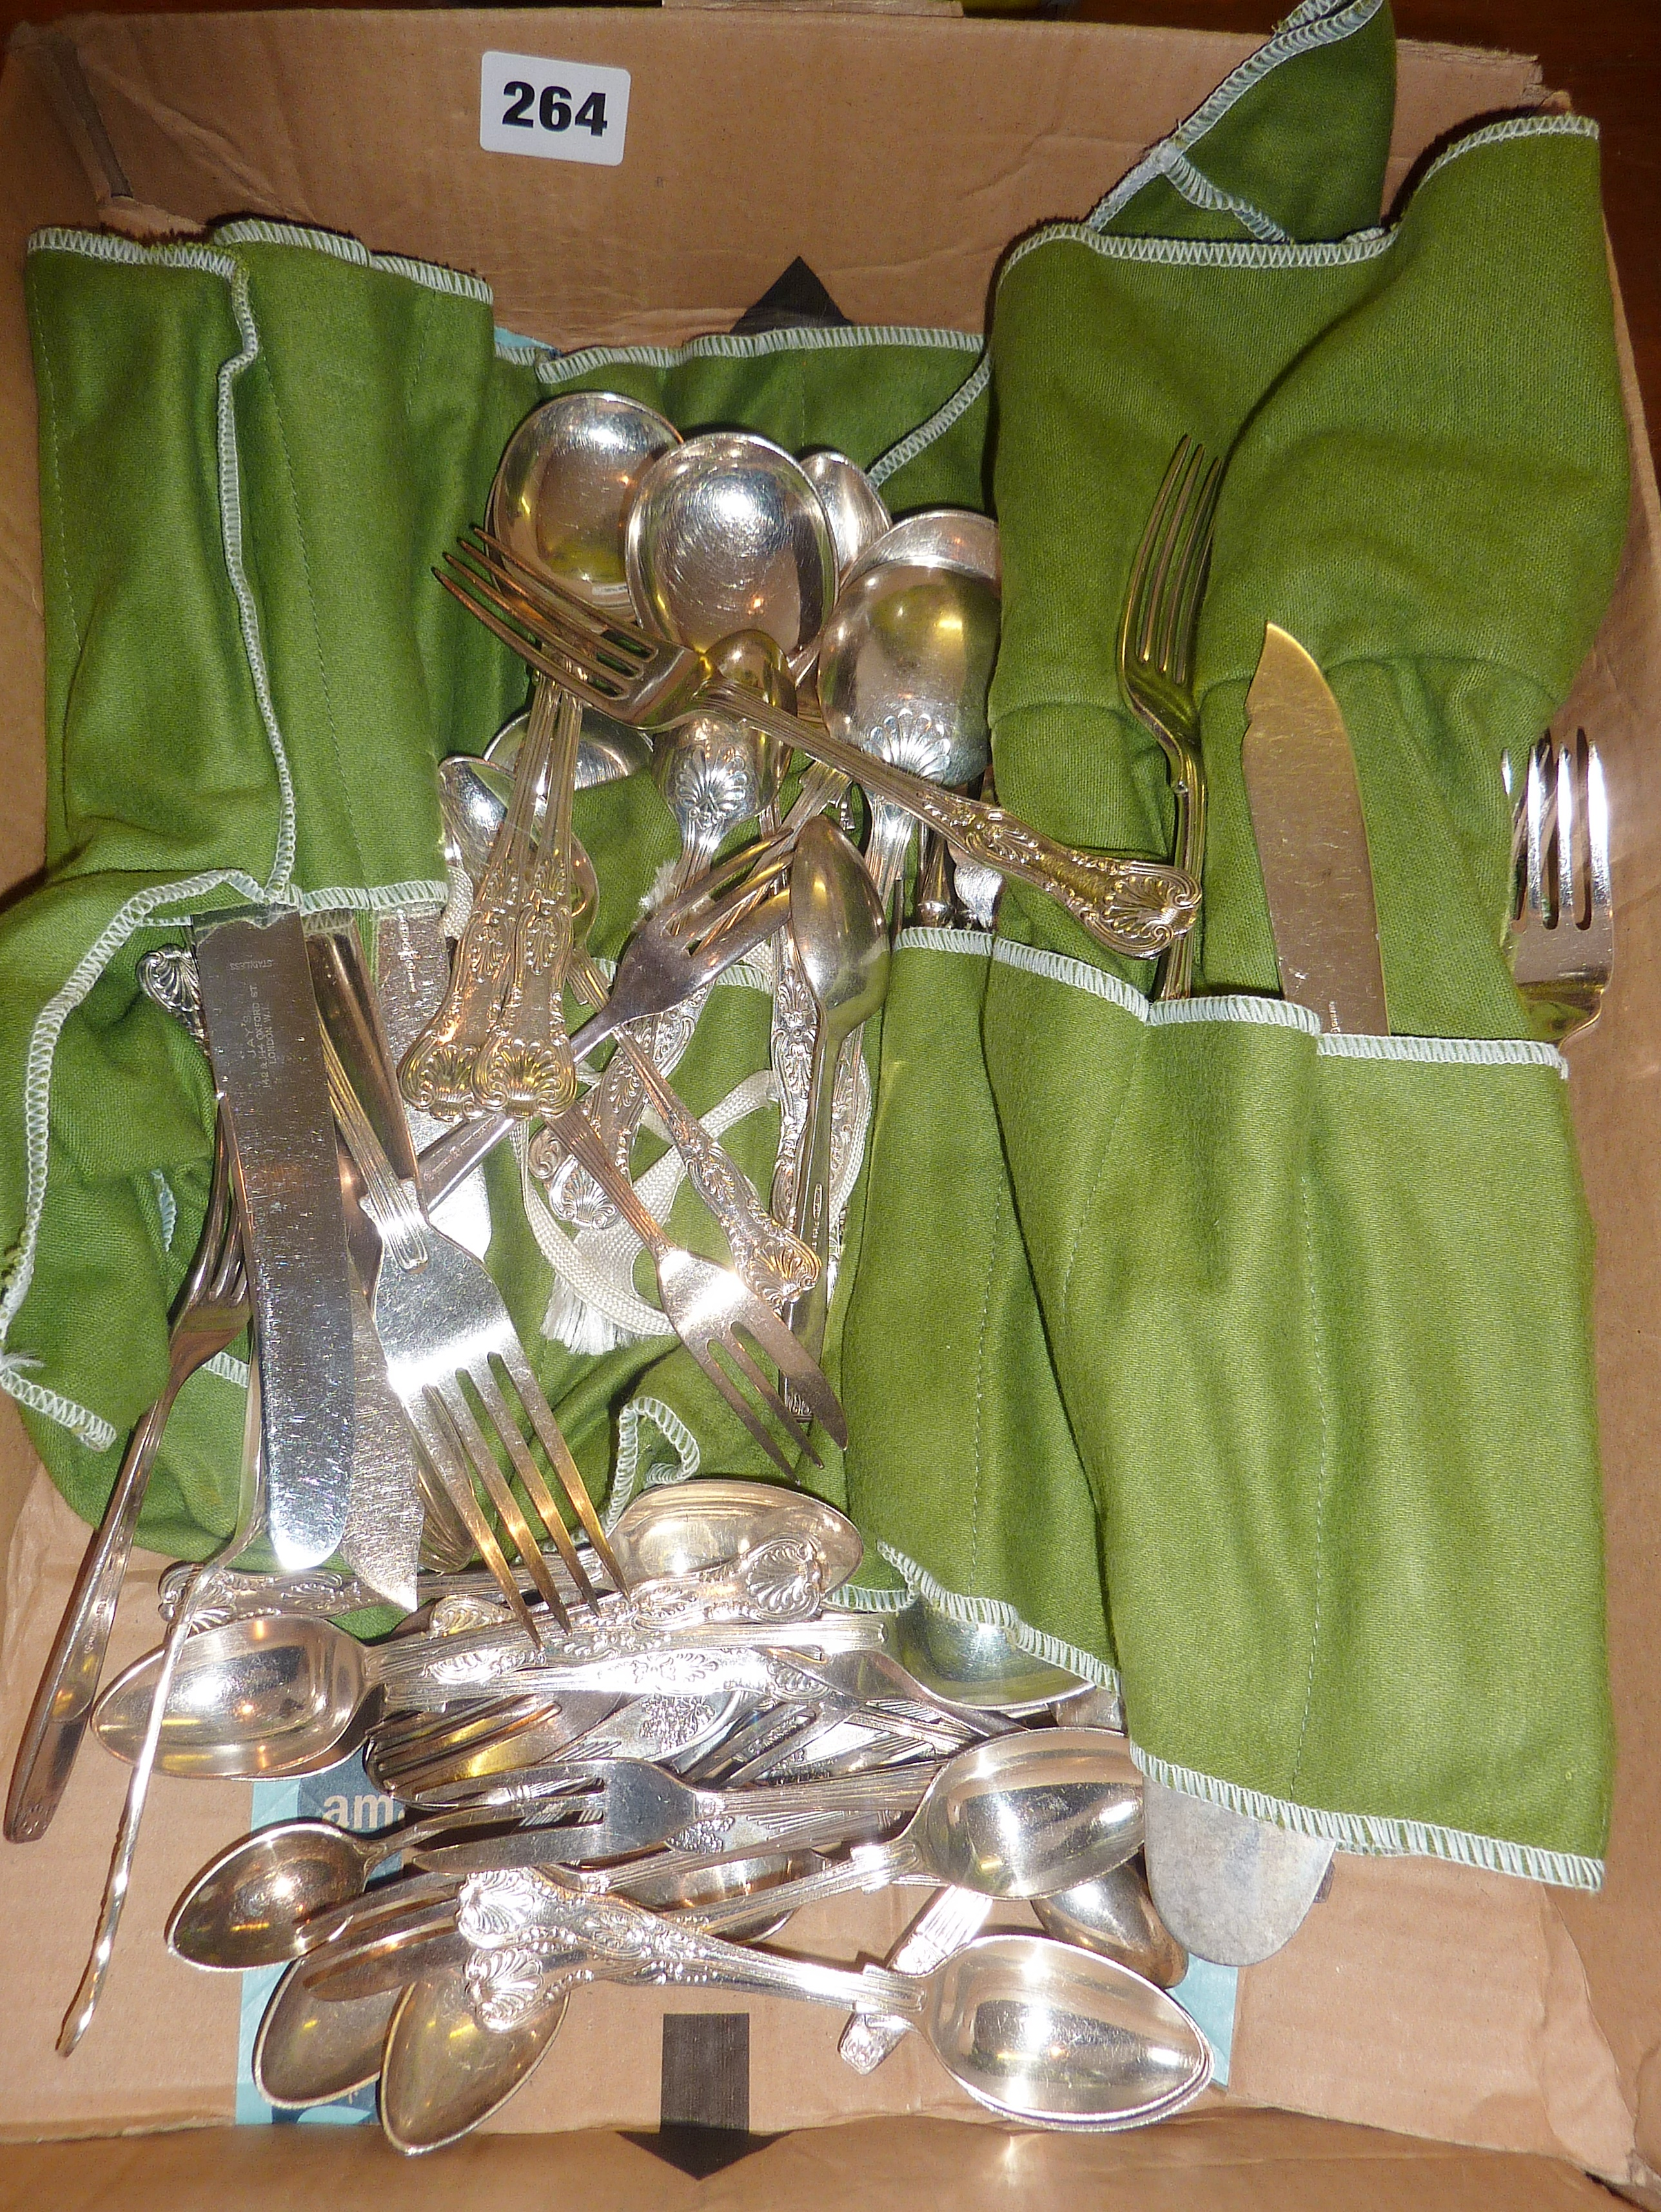 Silver-plated King's pattern cutlery set, and other cutlery